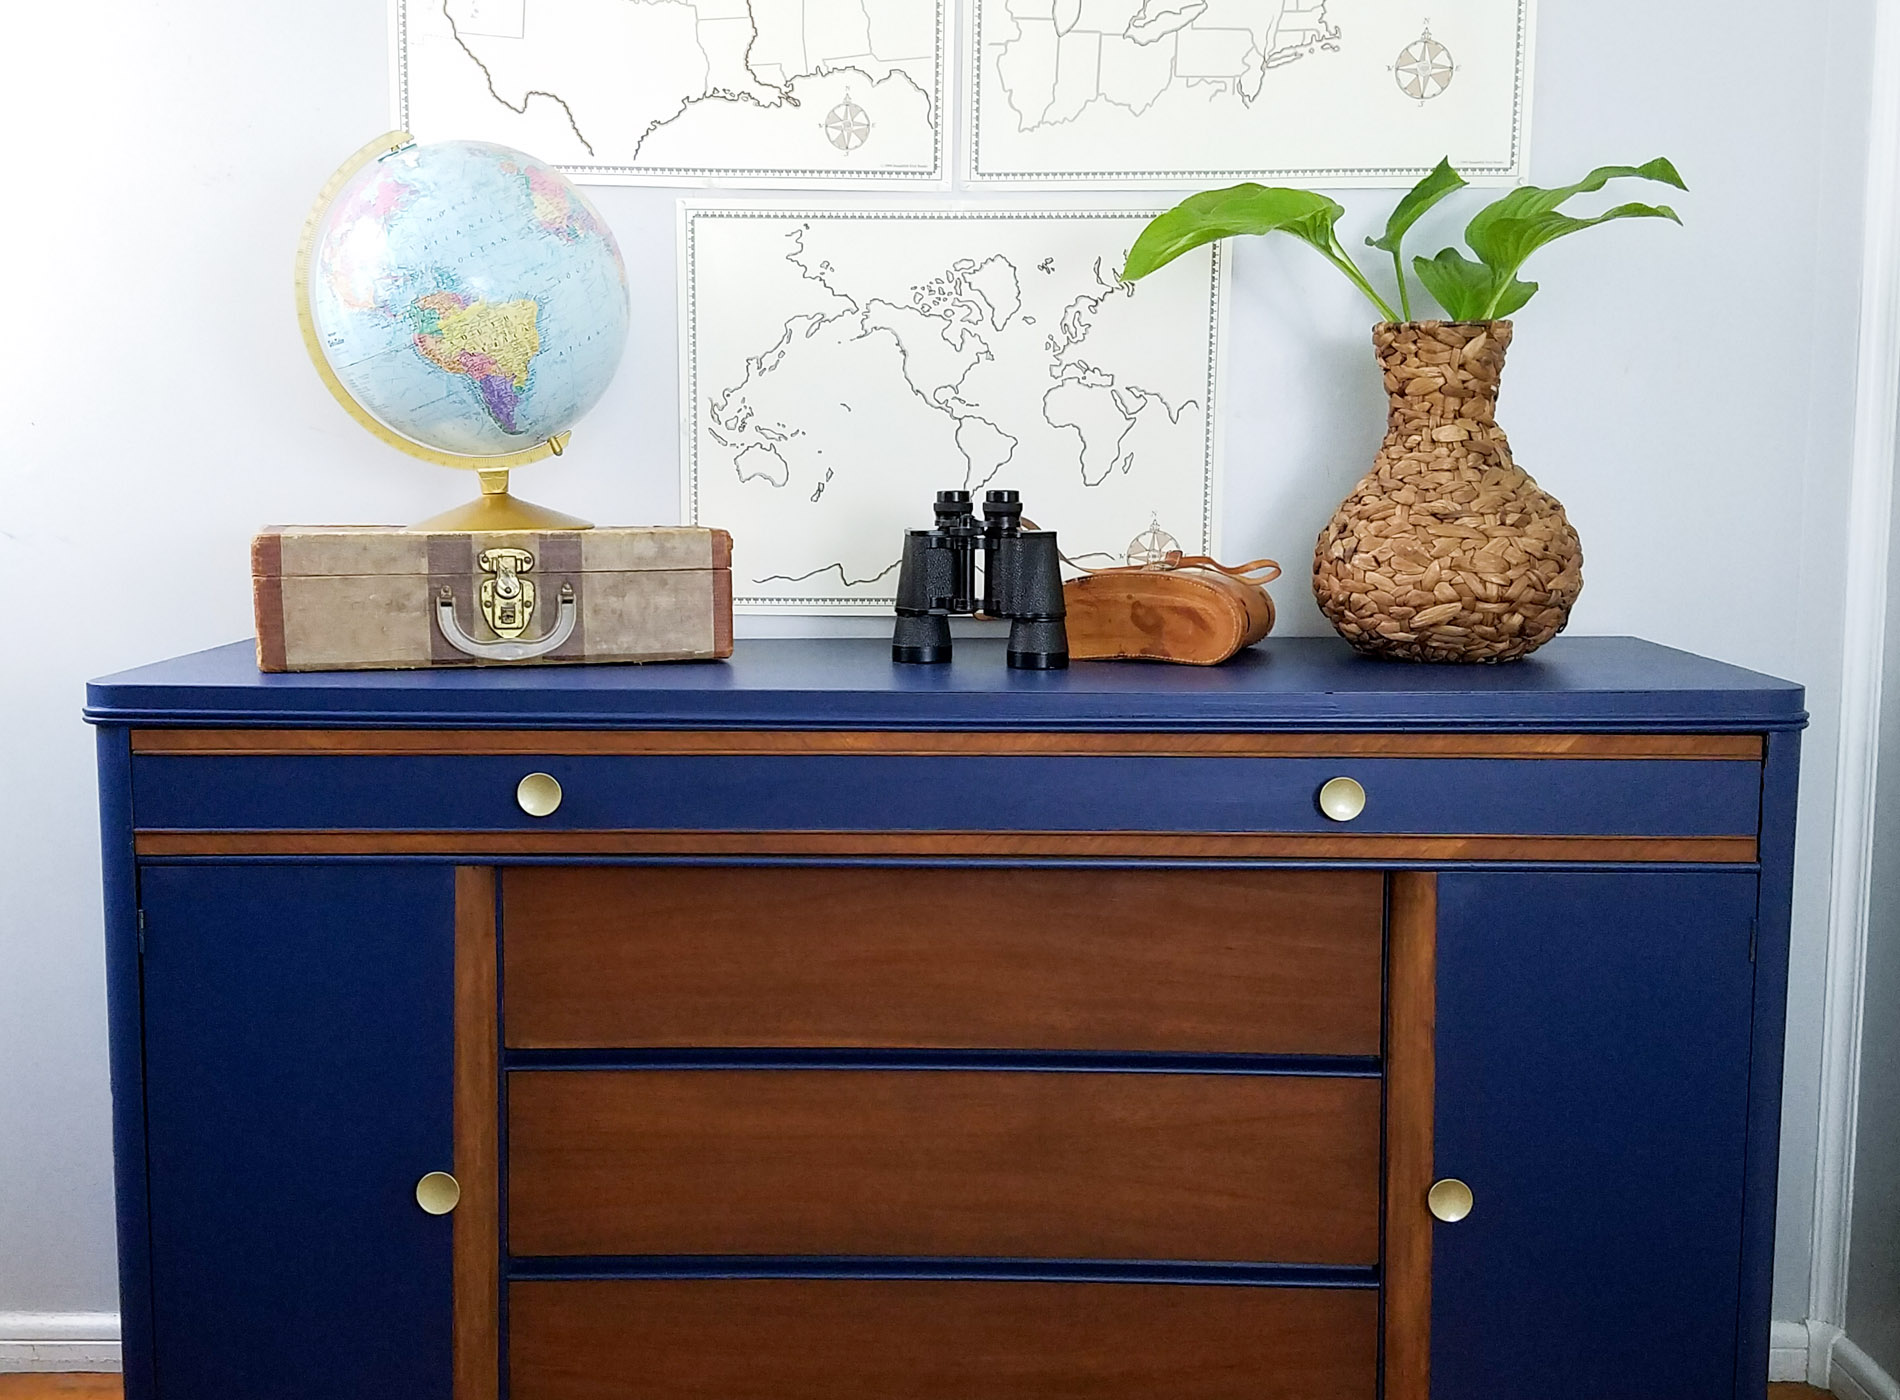 Featured Art Deco Buffet Revived by Prodigal Pieces | prodigalpieces.com